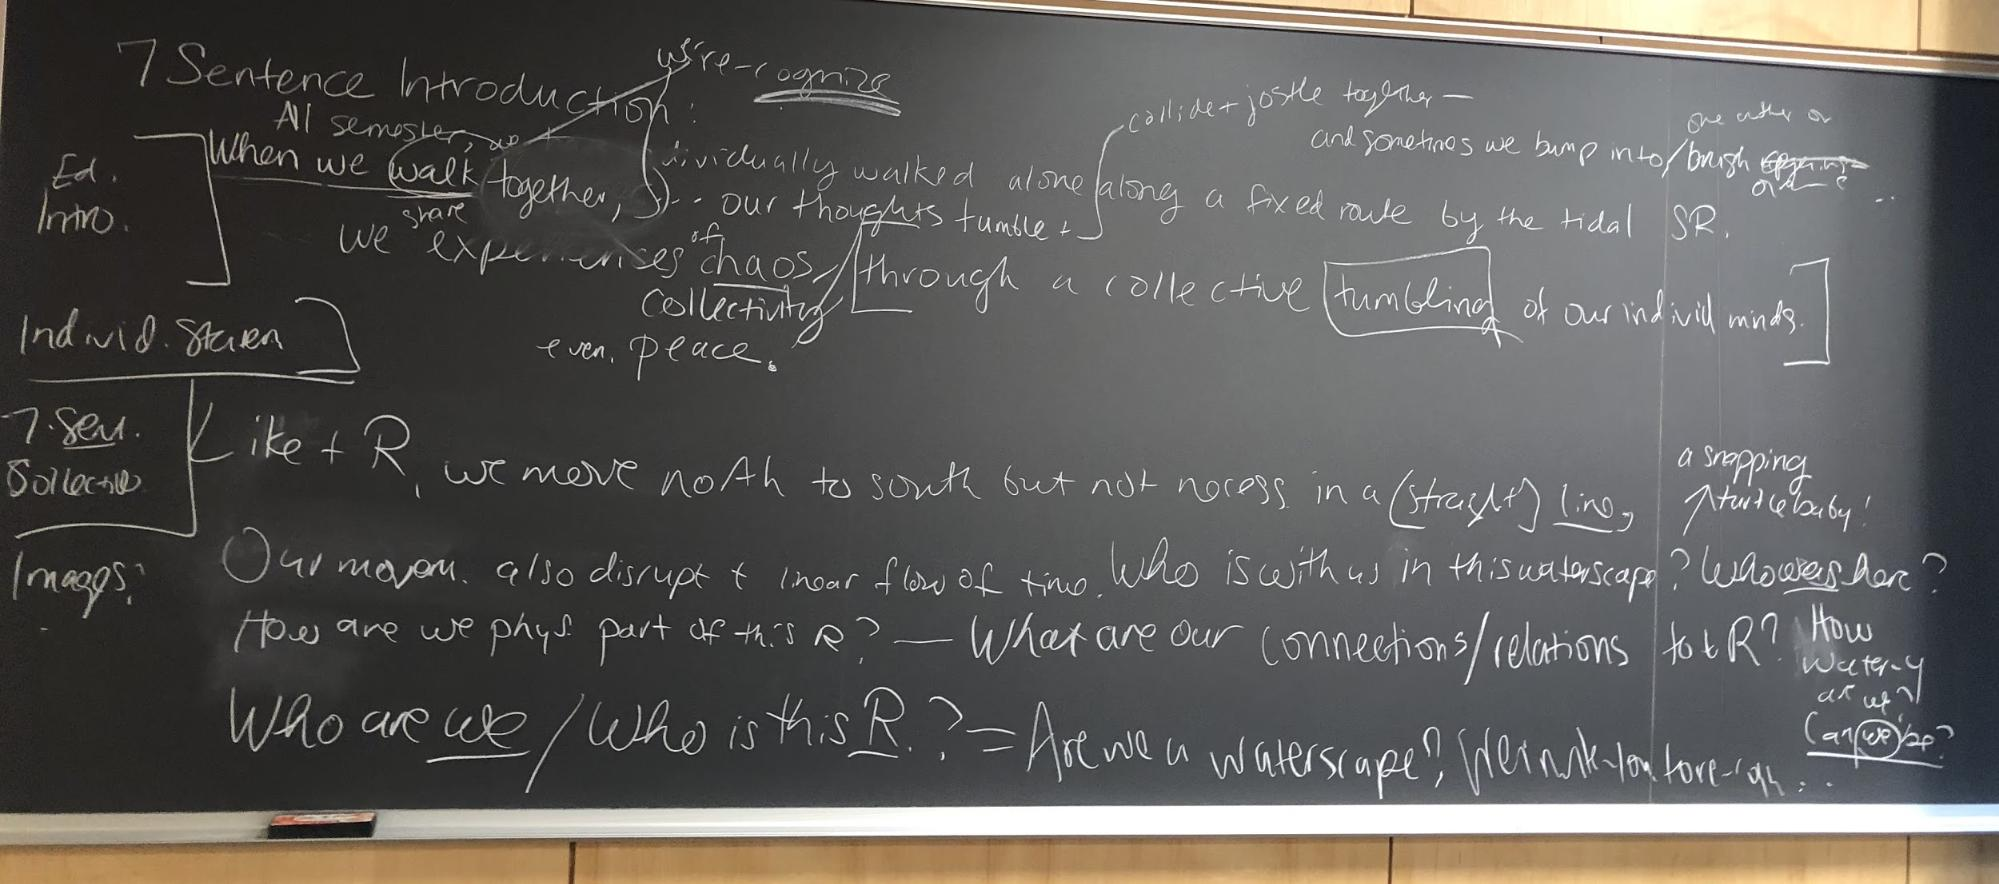 Blackboard brainstorming